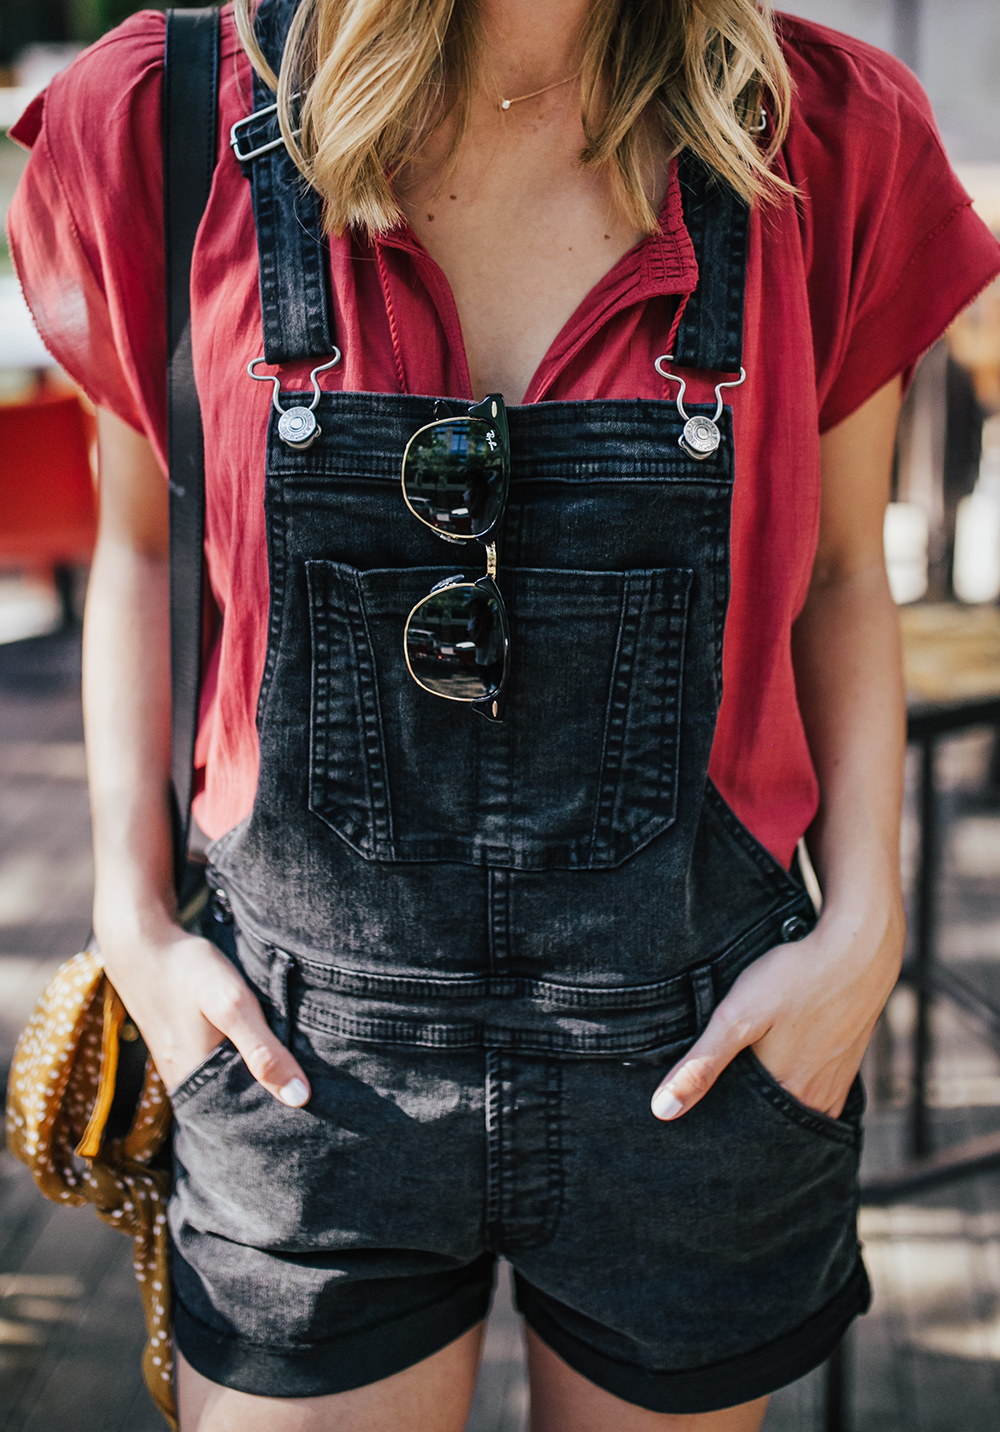 livvyland-blog-olivia-watson-black-short-overalls-abercrombie-everlane-black-pointed-toe-flats-summer-outfit-jos-coffee-second-street-austin-texas-fashion-blogger-2